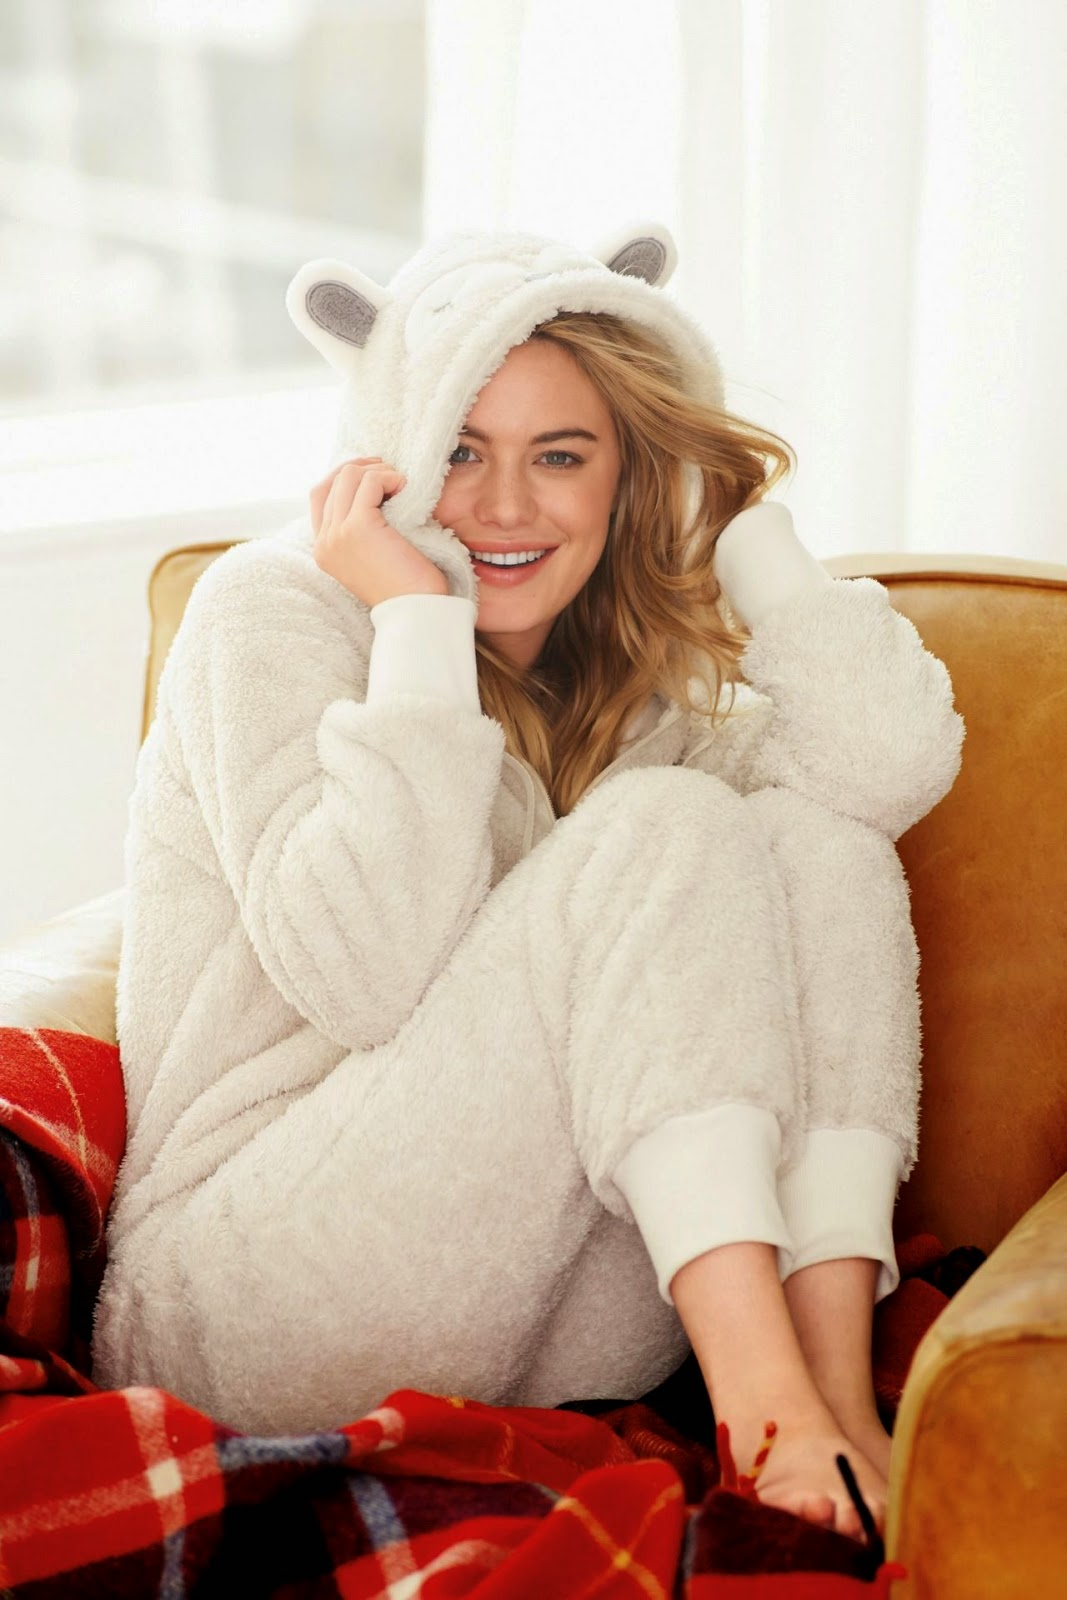 Next Sleepwear Fall/Winter 2014 Lookbook starring Camille Rowe